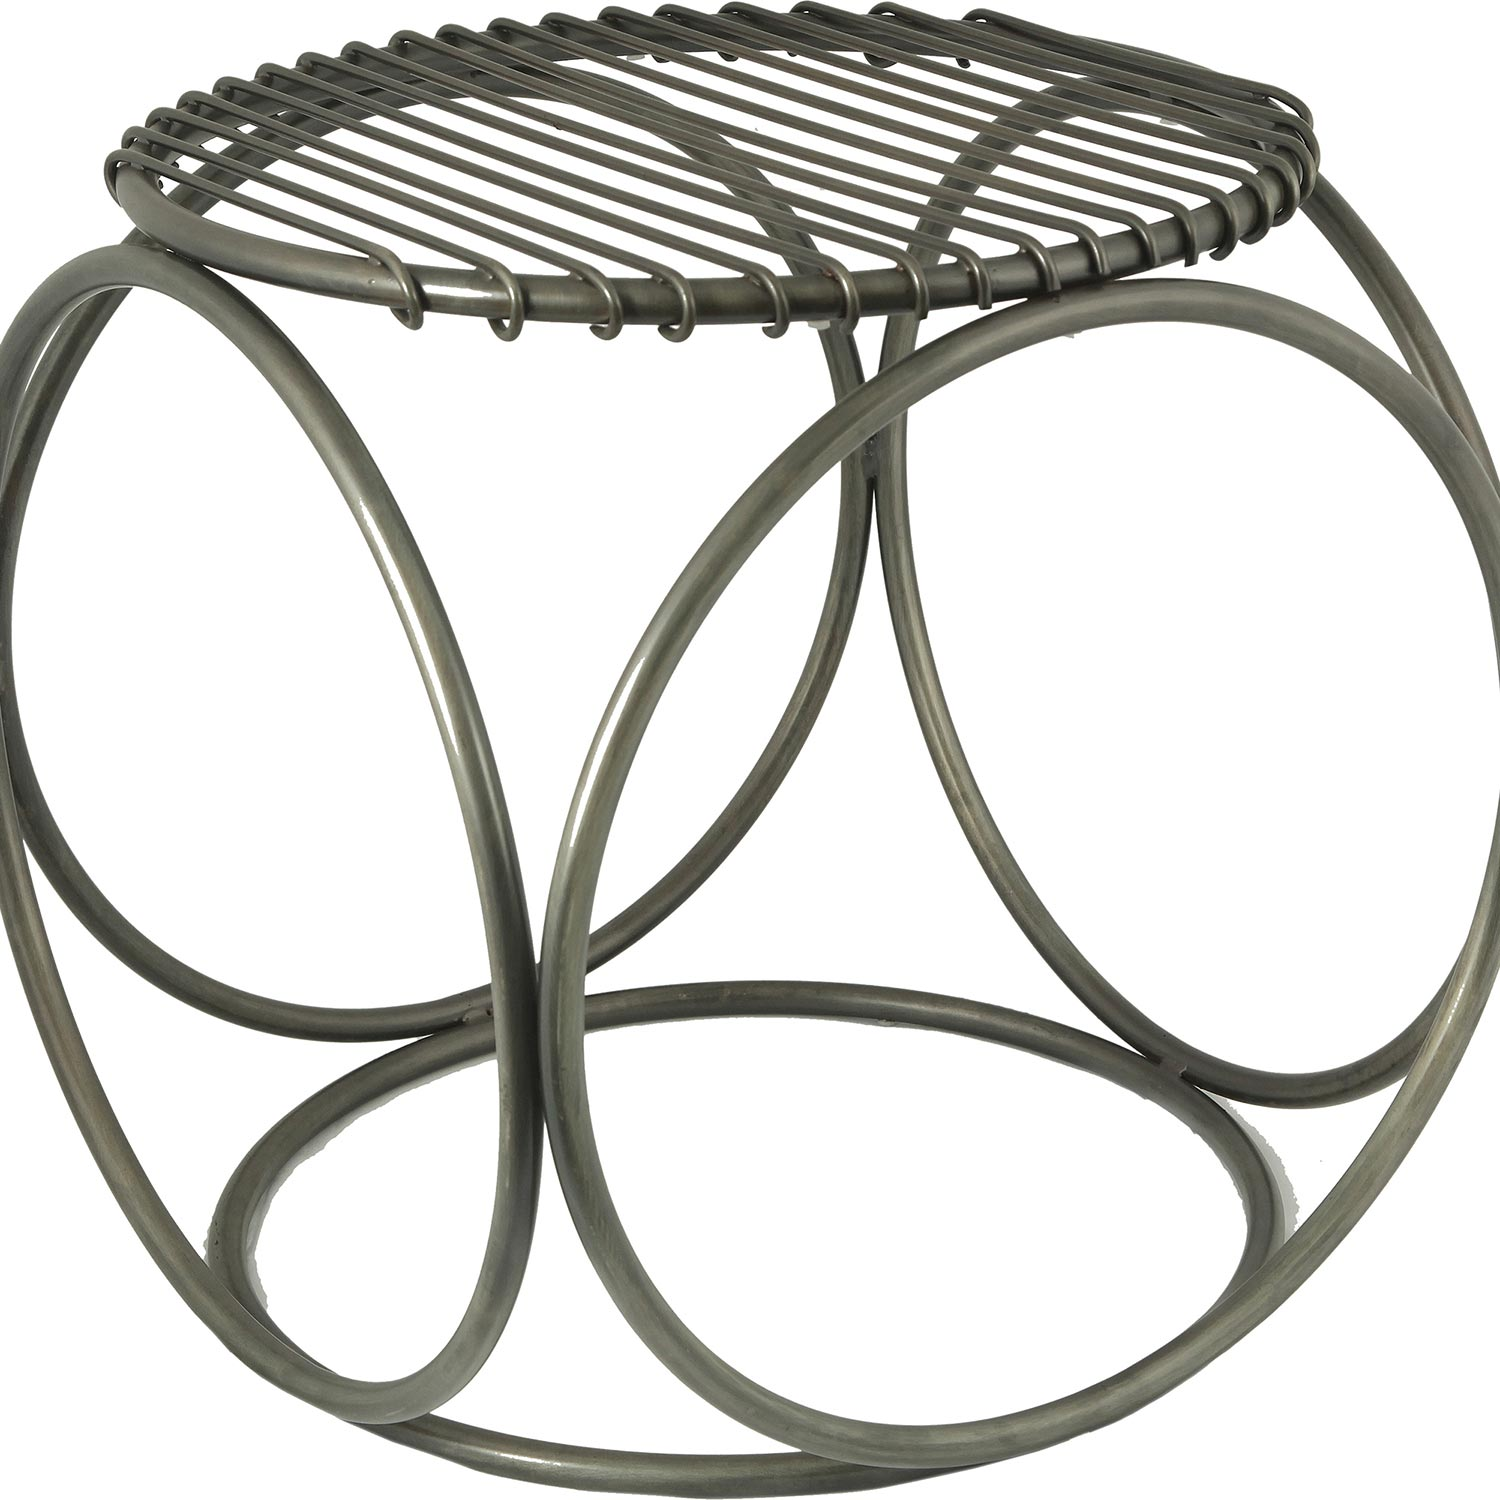 Ren-Wil Zia Chair - Antique Zinc